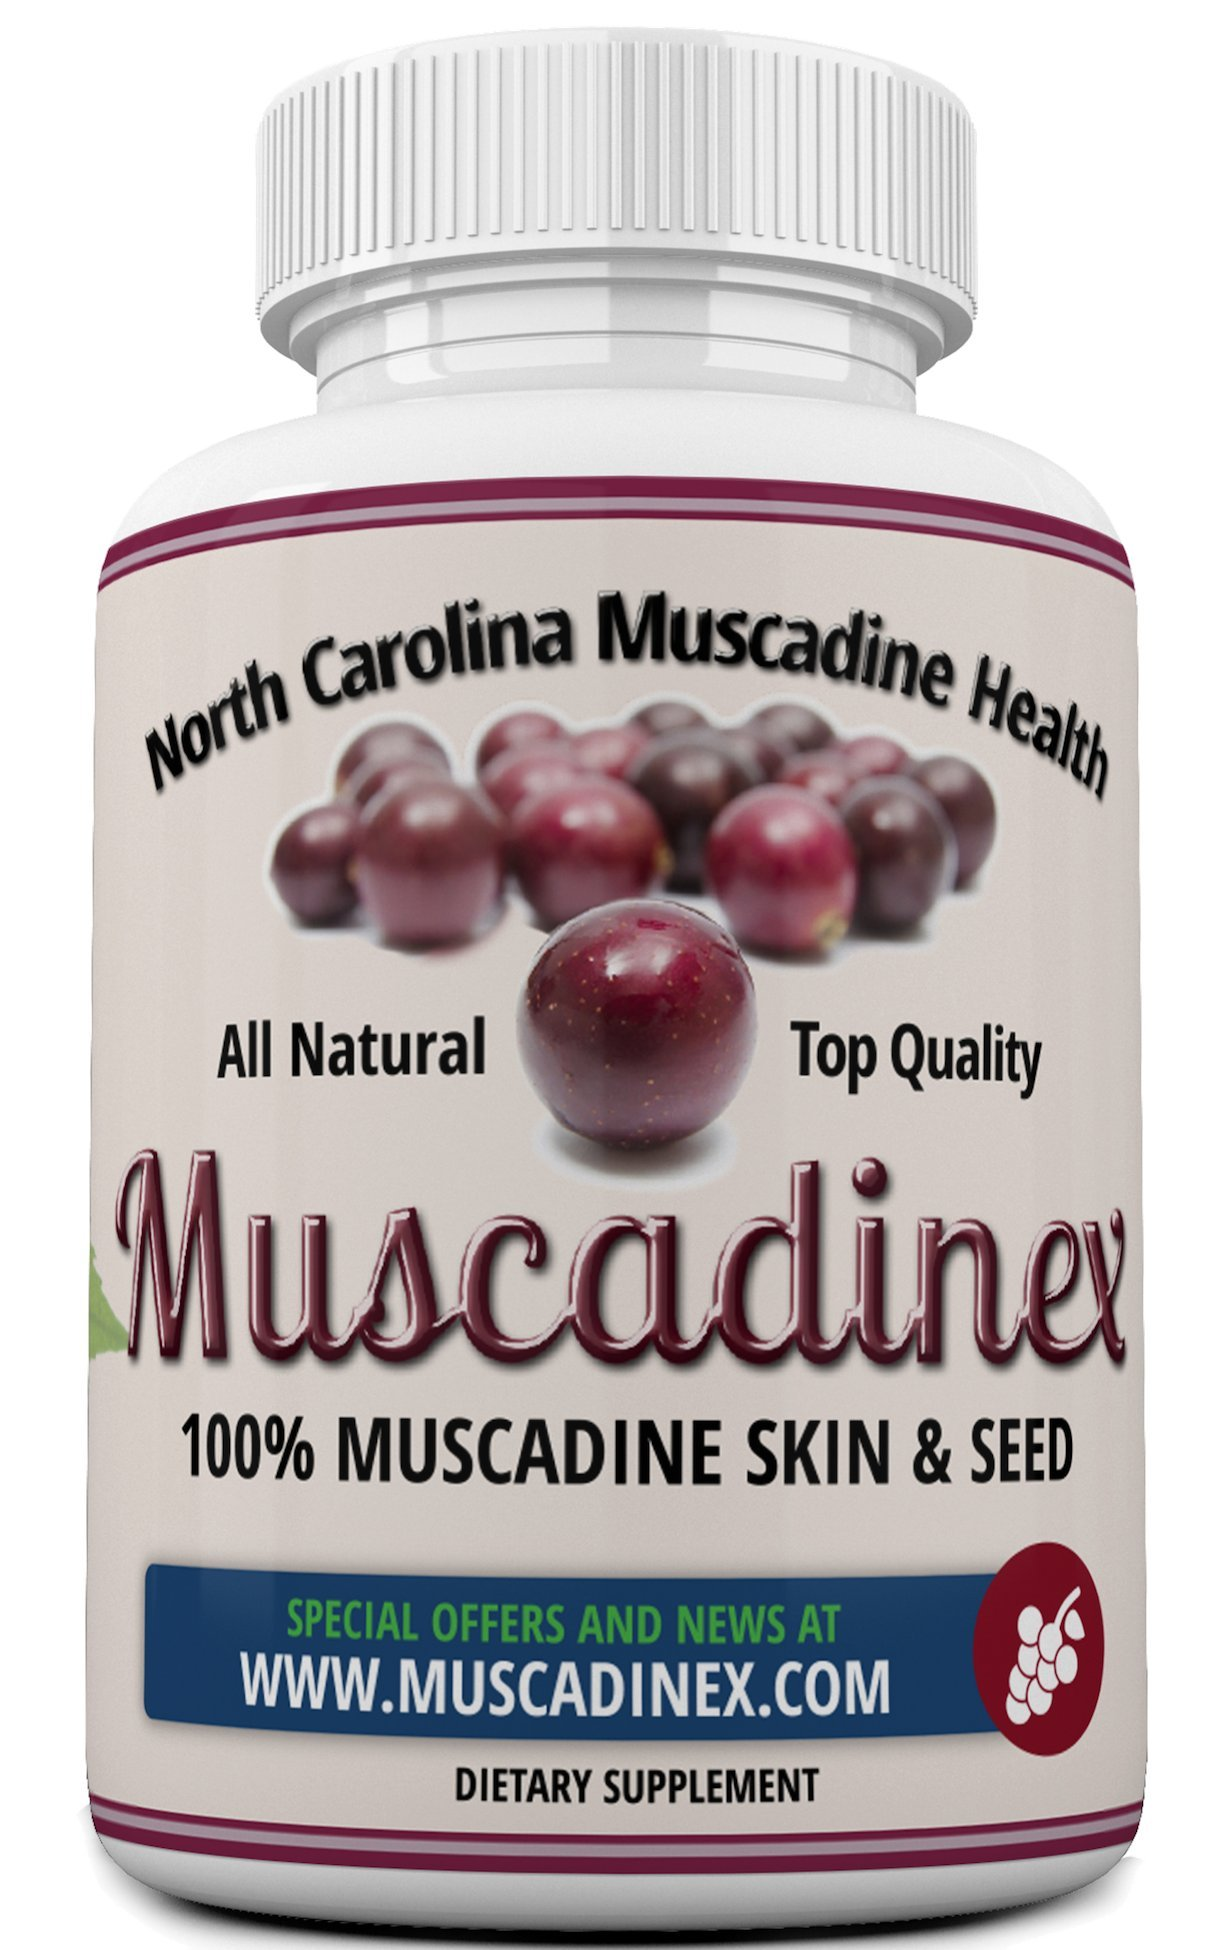 Muscadine grape 650mg. Plus 229% Resveratrol bioavailability boost with piperine pepper extract. The muscadine is America's strongest grape. Also has ellagic acid, quercetin and antioxidants. 60 caps.